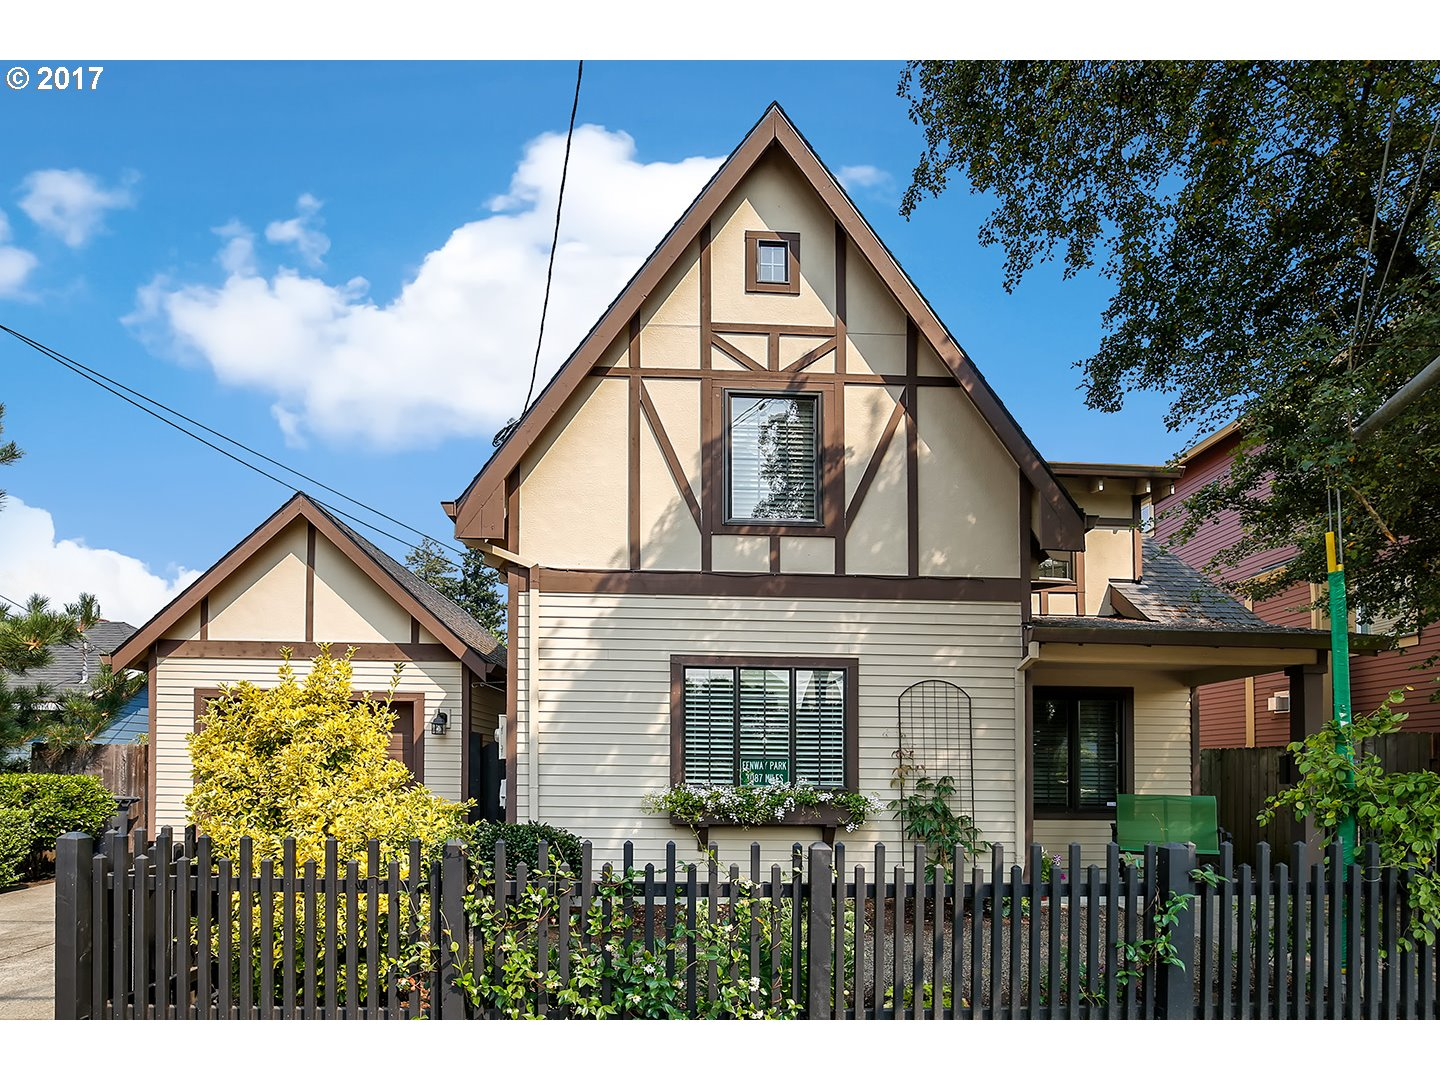 One of a kind Tudor style home, immaculate condition! Welcoming porch, sit relax, before walking inside to a charming open concept main floor. Lovely staircase to the 2nd level w/ a large master suite, closets & storage plenty, down the hall: 2nd bedroom, office space, laundry room. Backyard is private with a SynLawn(heat resistant+animal friendly), recycled tires as bark dust. Covered patio! GreenHome! NewSeasons+Starbucks close.